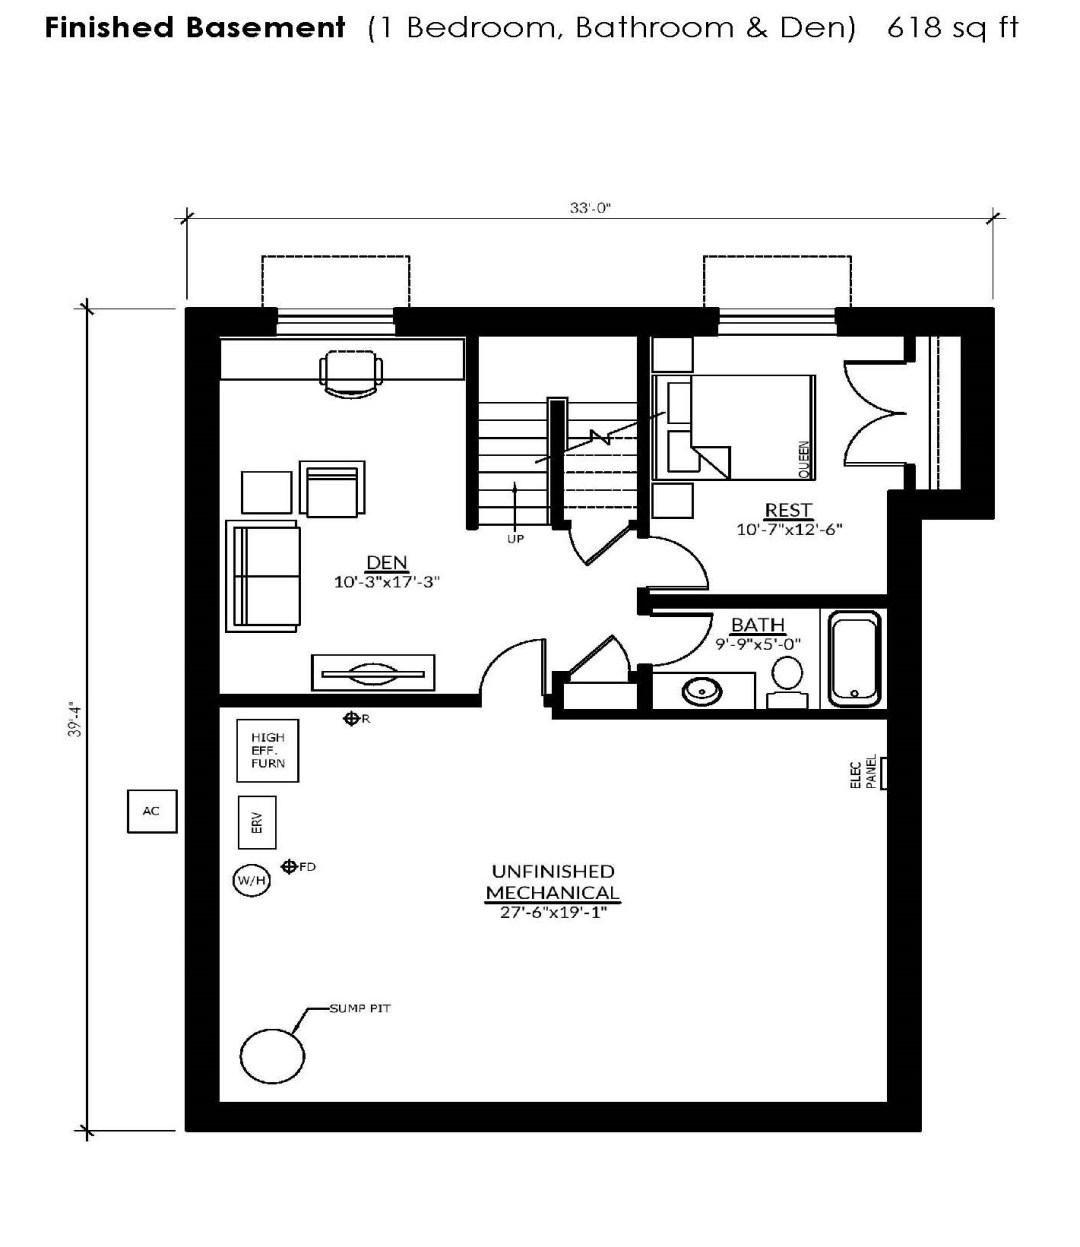 The basement floorplan of the Rideau with a loft at Watercolour Westport.